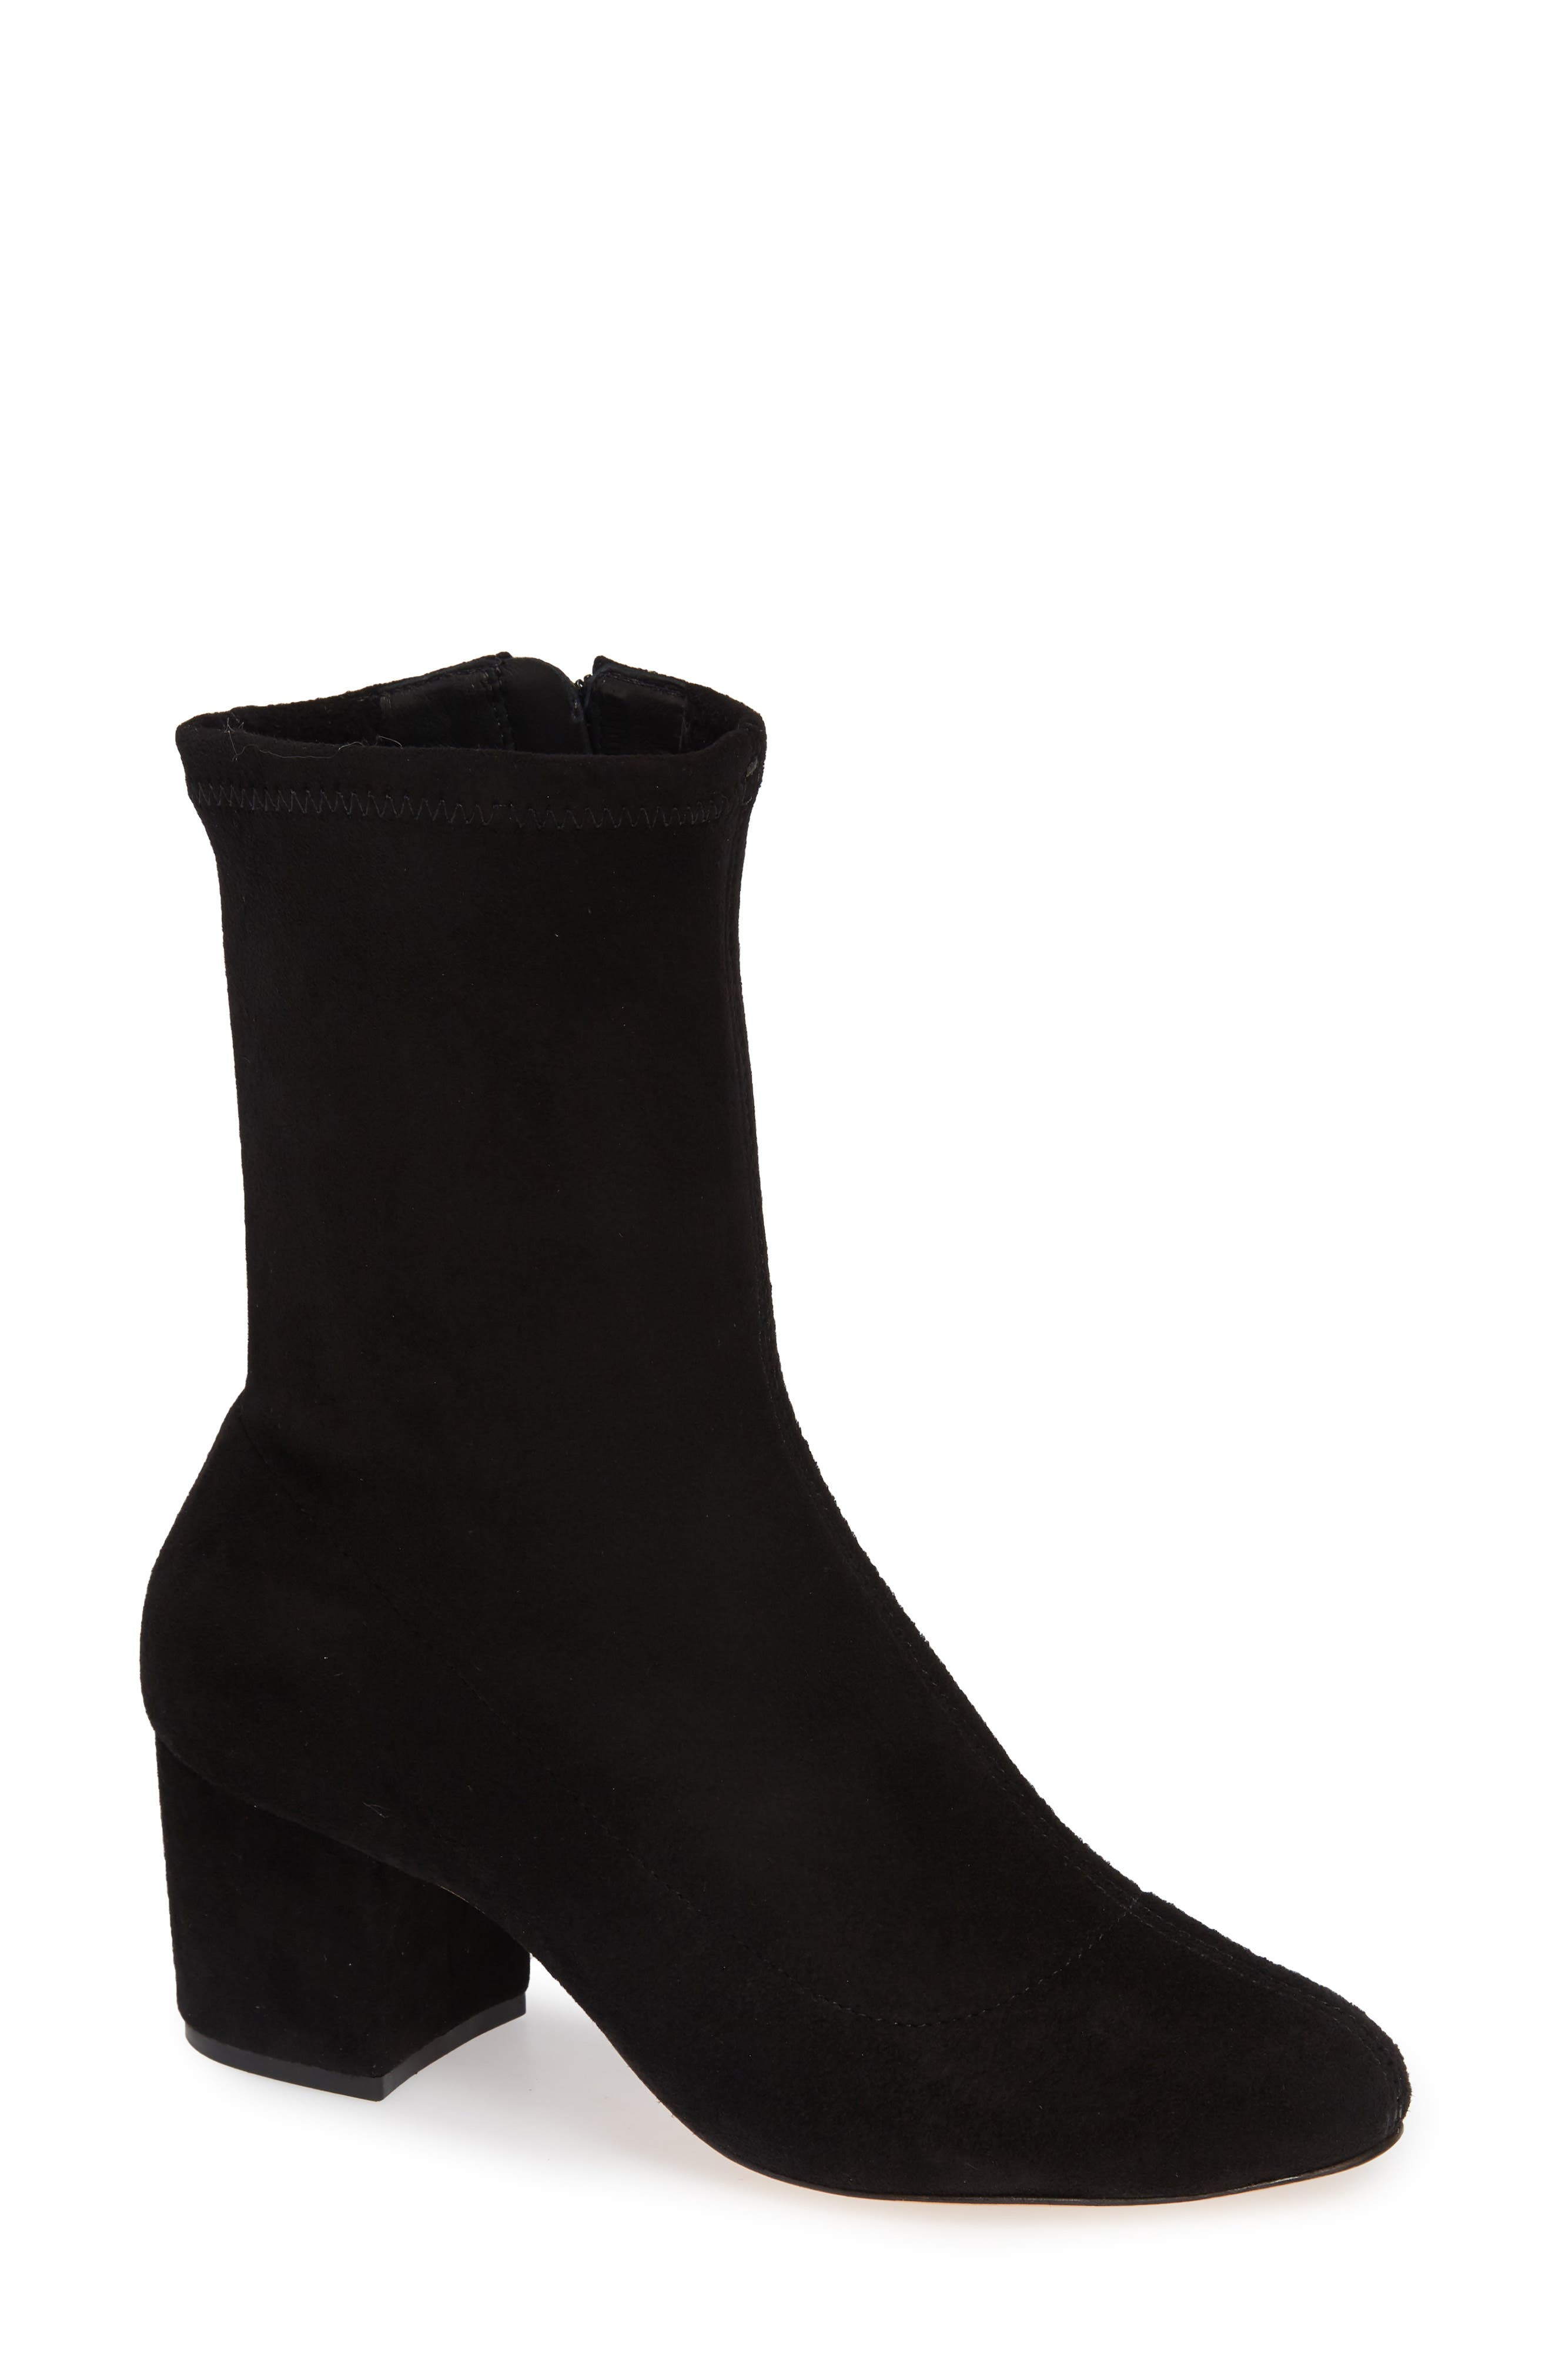 SCHUTZ Lupe Stretch Bootie, Main, color, 001